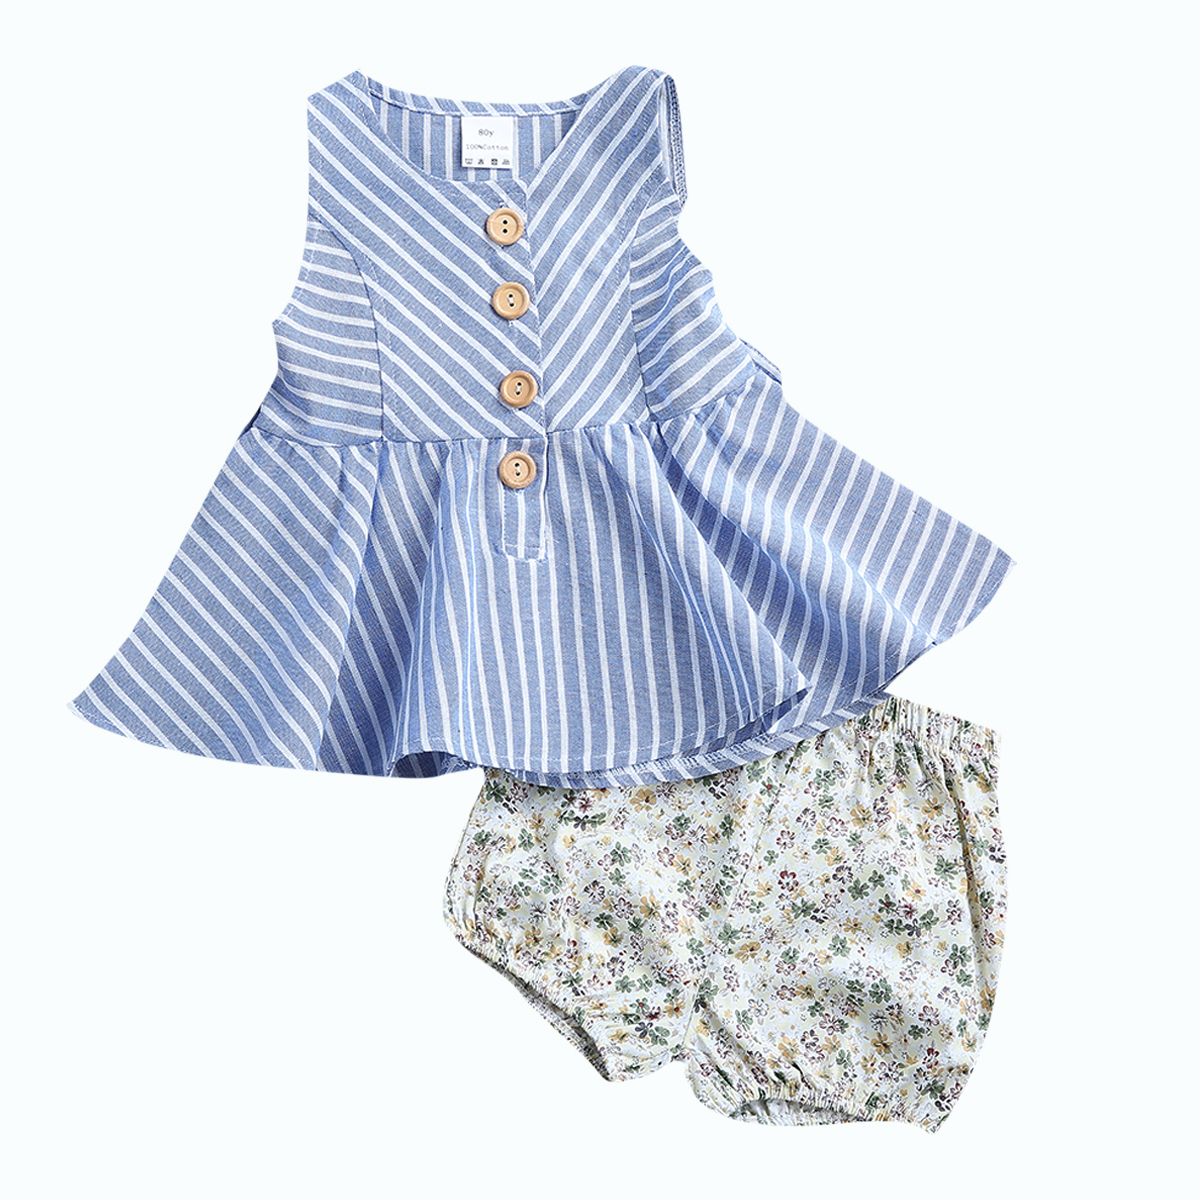 2017 Hot sell Summer Baby Girls Clothes Summer Child Cotton Strip Dress Sleeveless Tops Floral Pants Baby Clothing Set infant toddler kids baby girls summer outfit cotton striped sleeveless tops dress floral short pants girls clothes sunsuit 0 4y